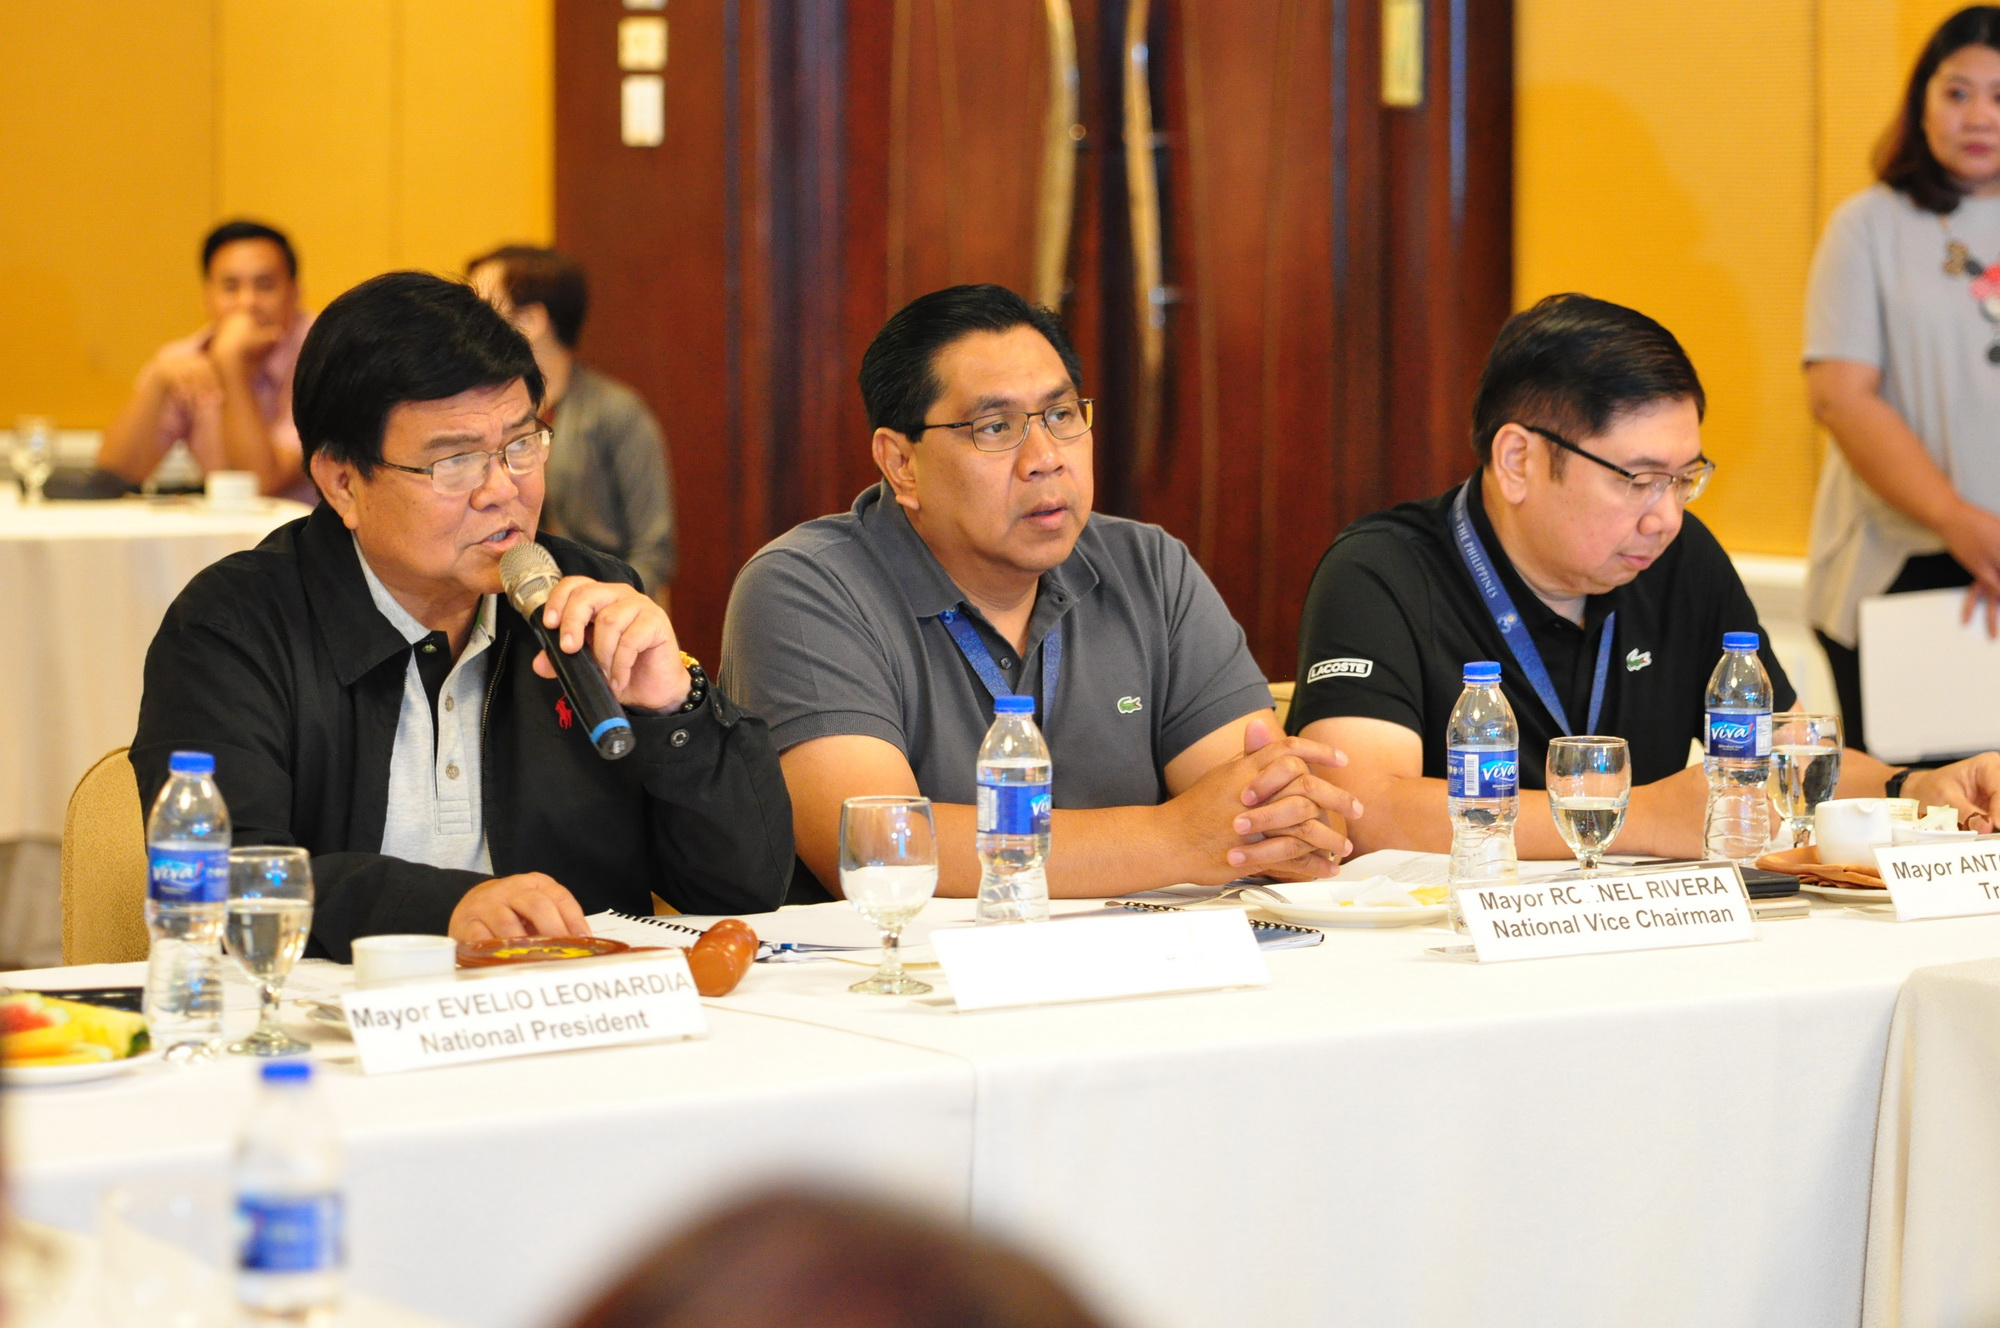 Gensan CM Rivera re-elected National Vice Chairperson during the LCP 68th General Assembly